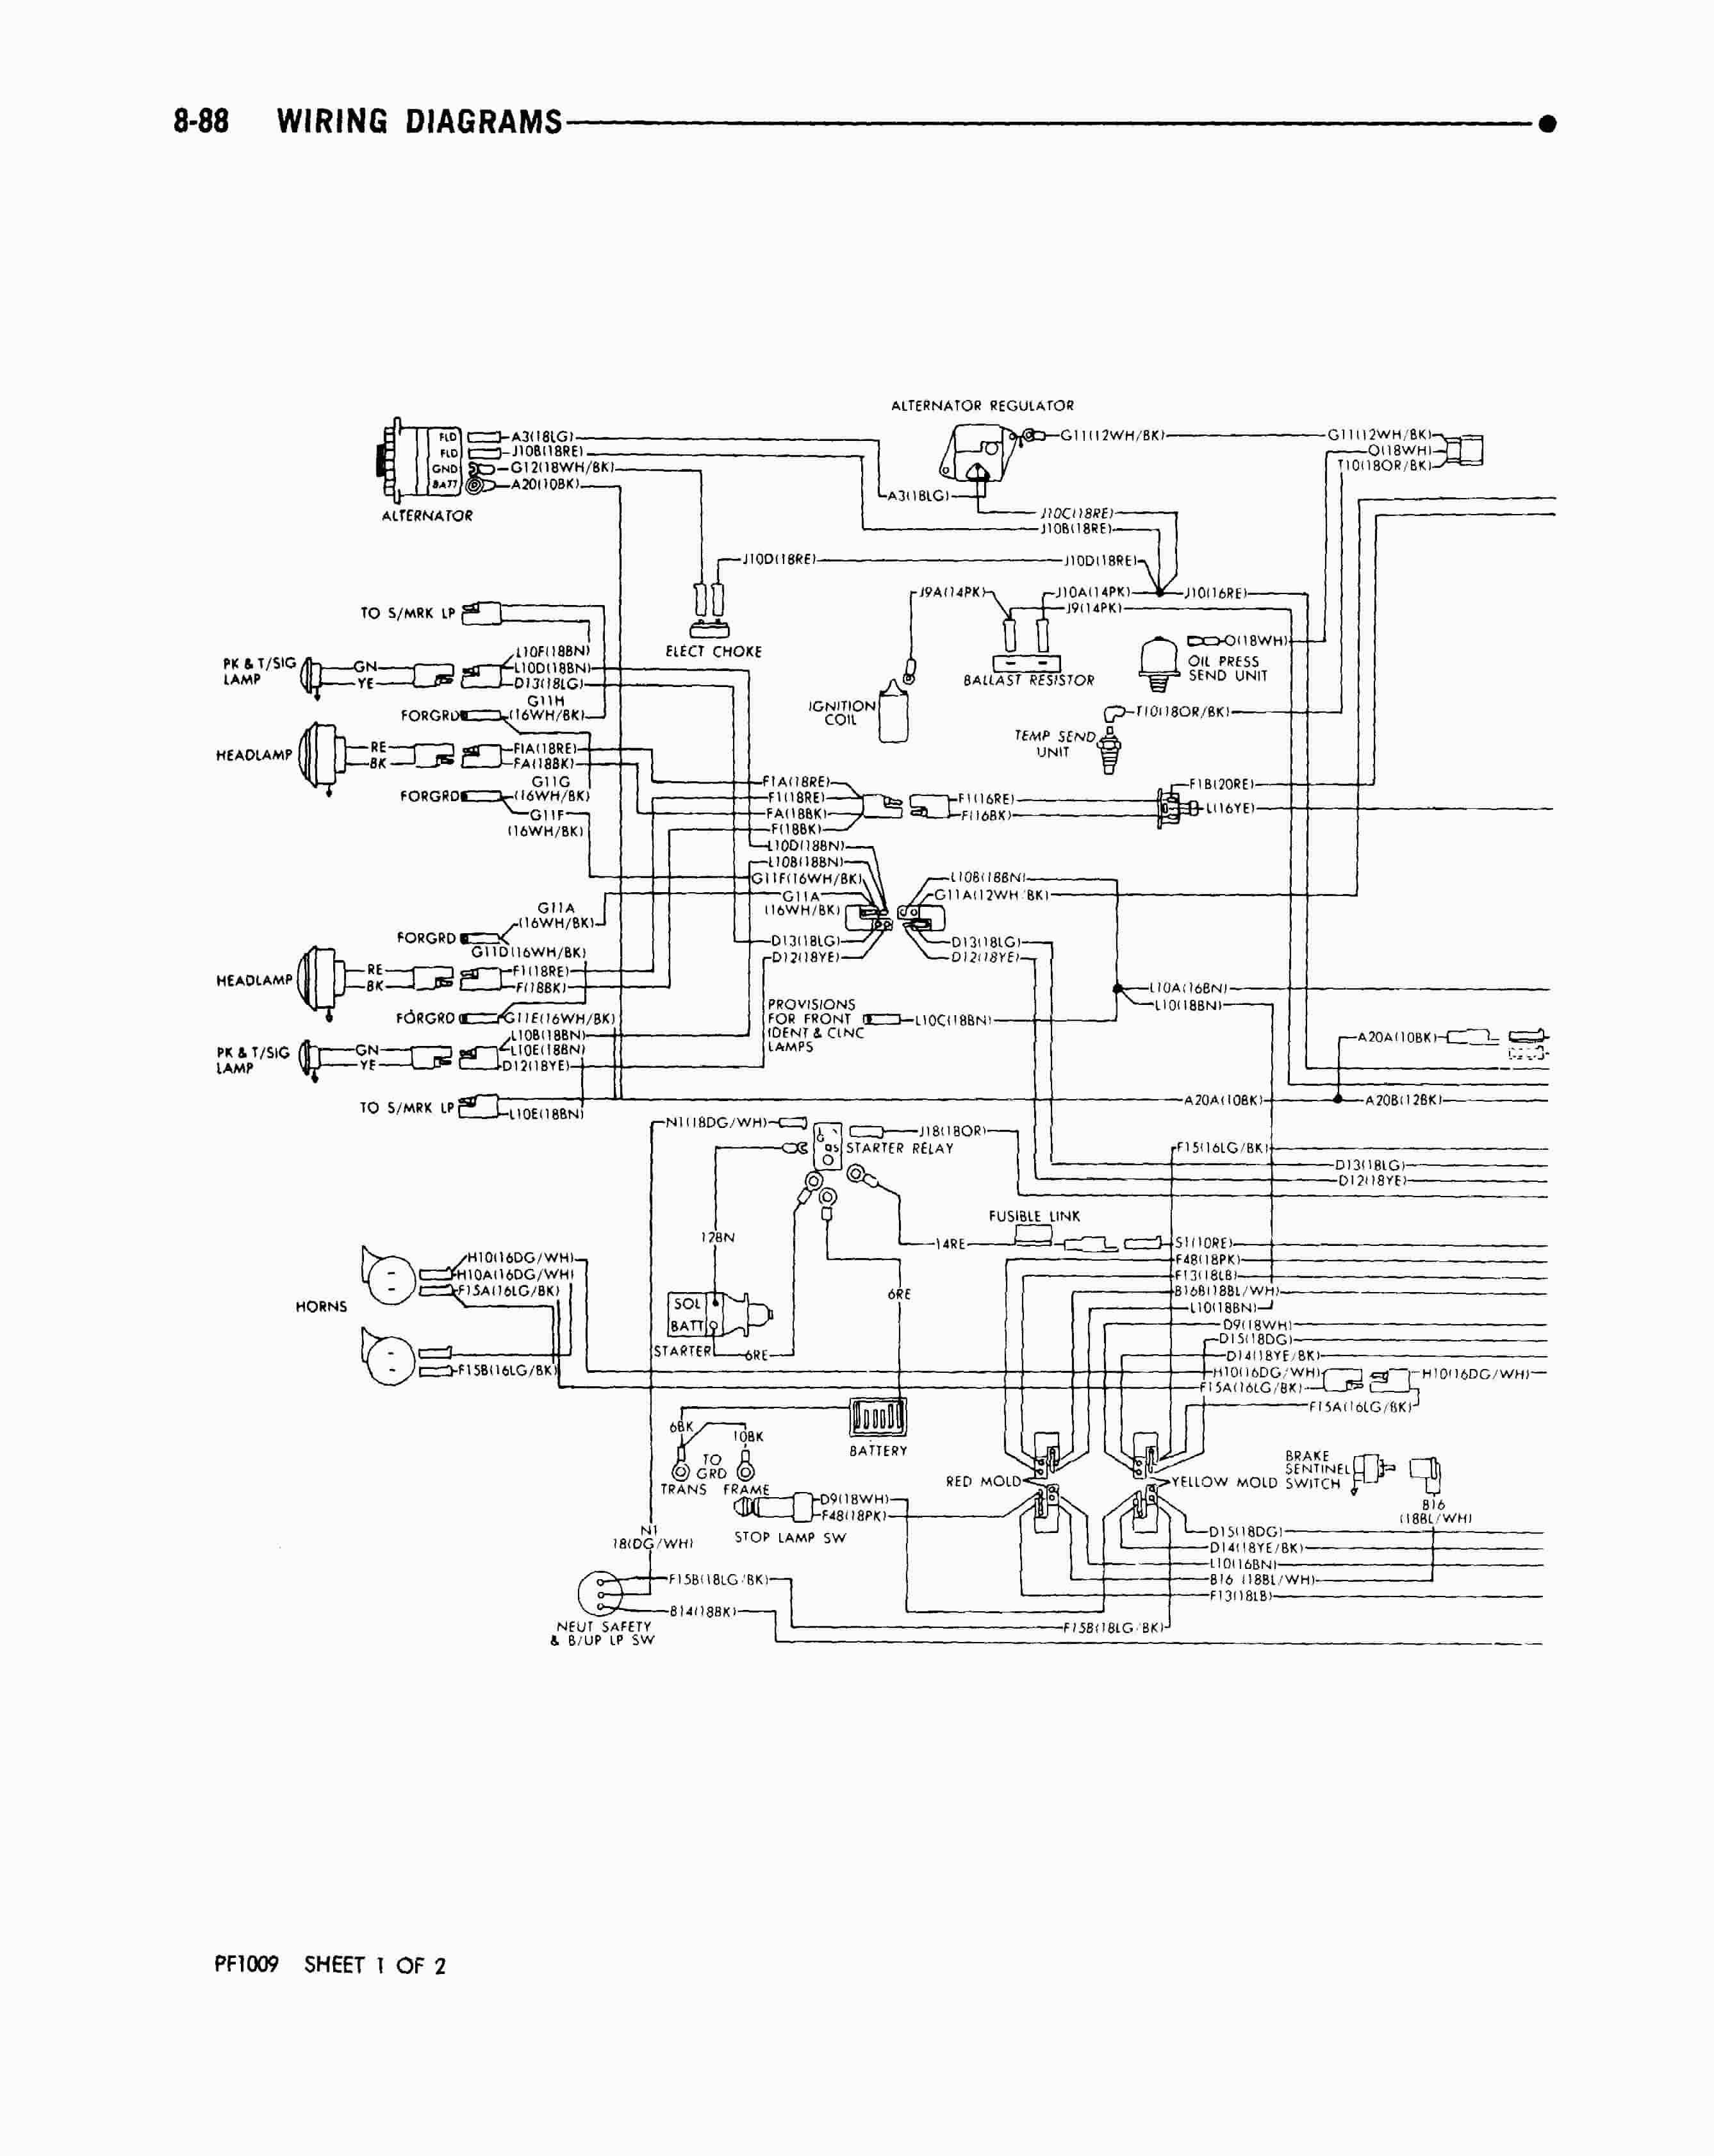 ford f53 chassis wiring basic electronics wiring diagram Ford E450 Wiring Schematic 2008 ford f53 wiring diagram 2000 ford f53 wiring diagram pcm pinmedium resolution of ford f53